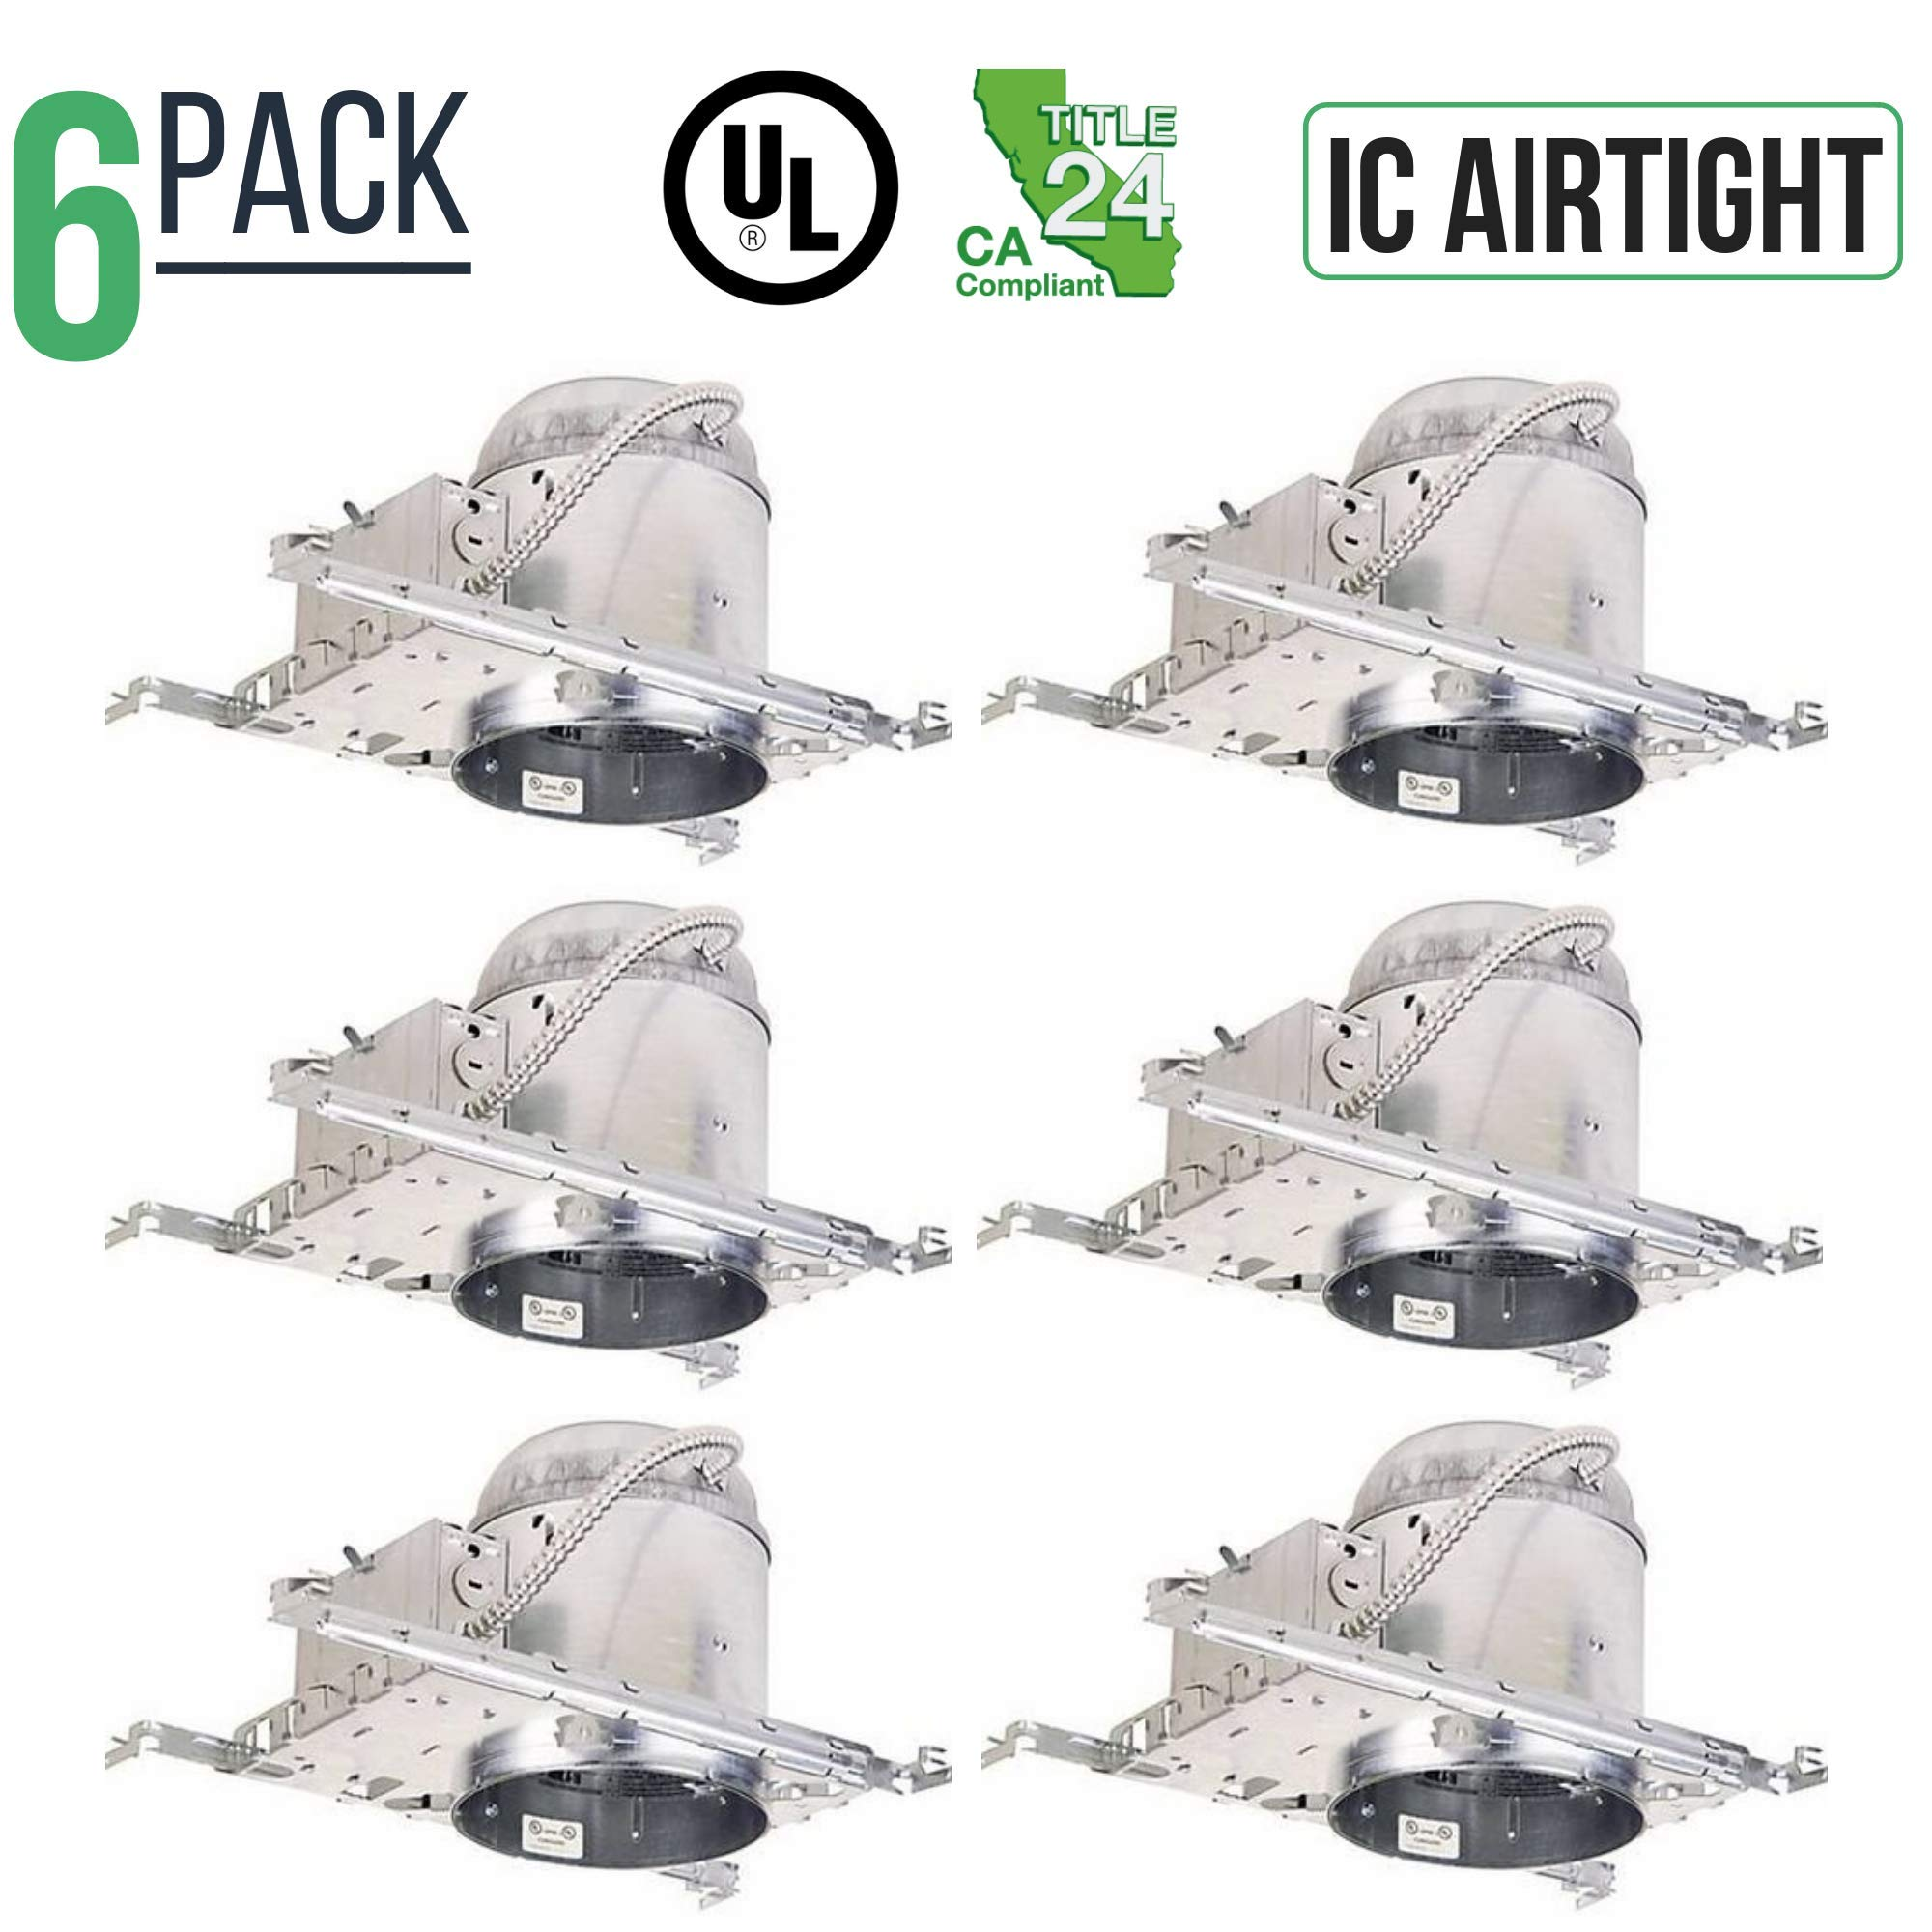 6 Pack - 5'' Inch LED New Construction Recessed Housing Can Light IC Airtight Title 24 Certified Replaces Halo & Juno